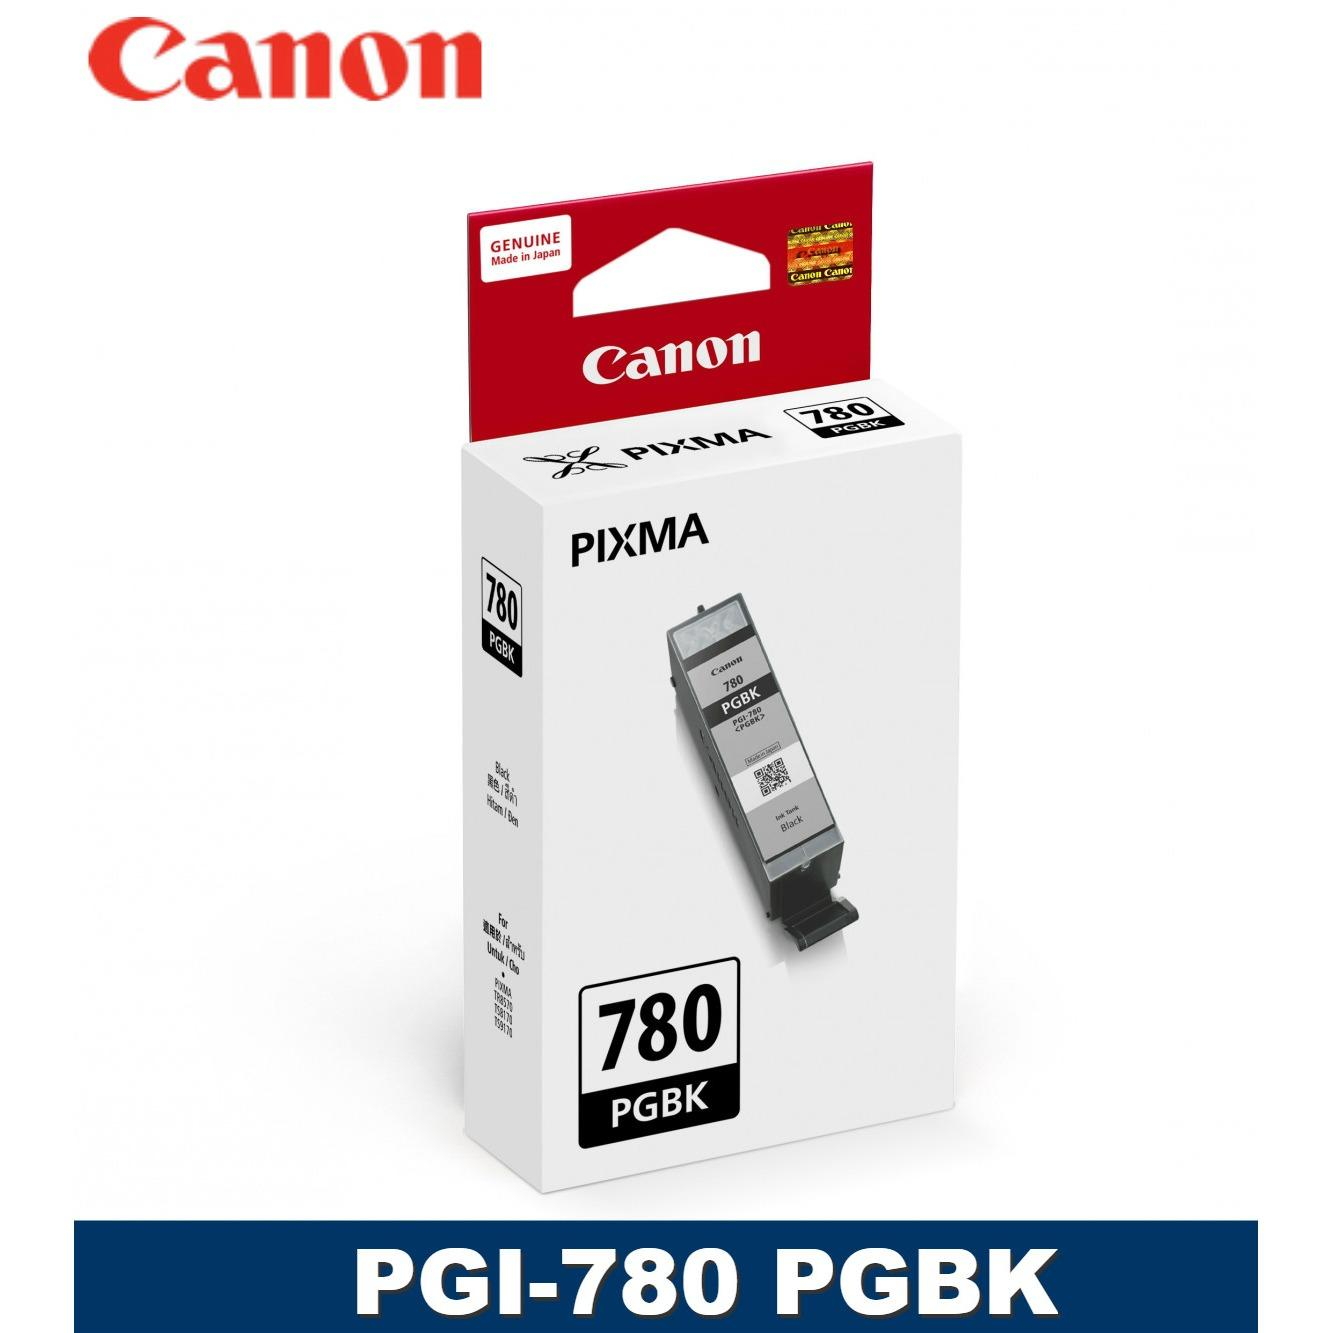 The New Price Of Canon Pgi 725bk Black Ink Cartridge And Update 29 Photo Magenta Original 780 Pgbk Cli 781 Cyan Yellow